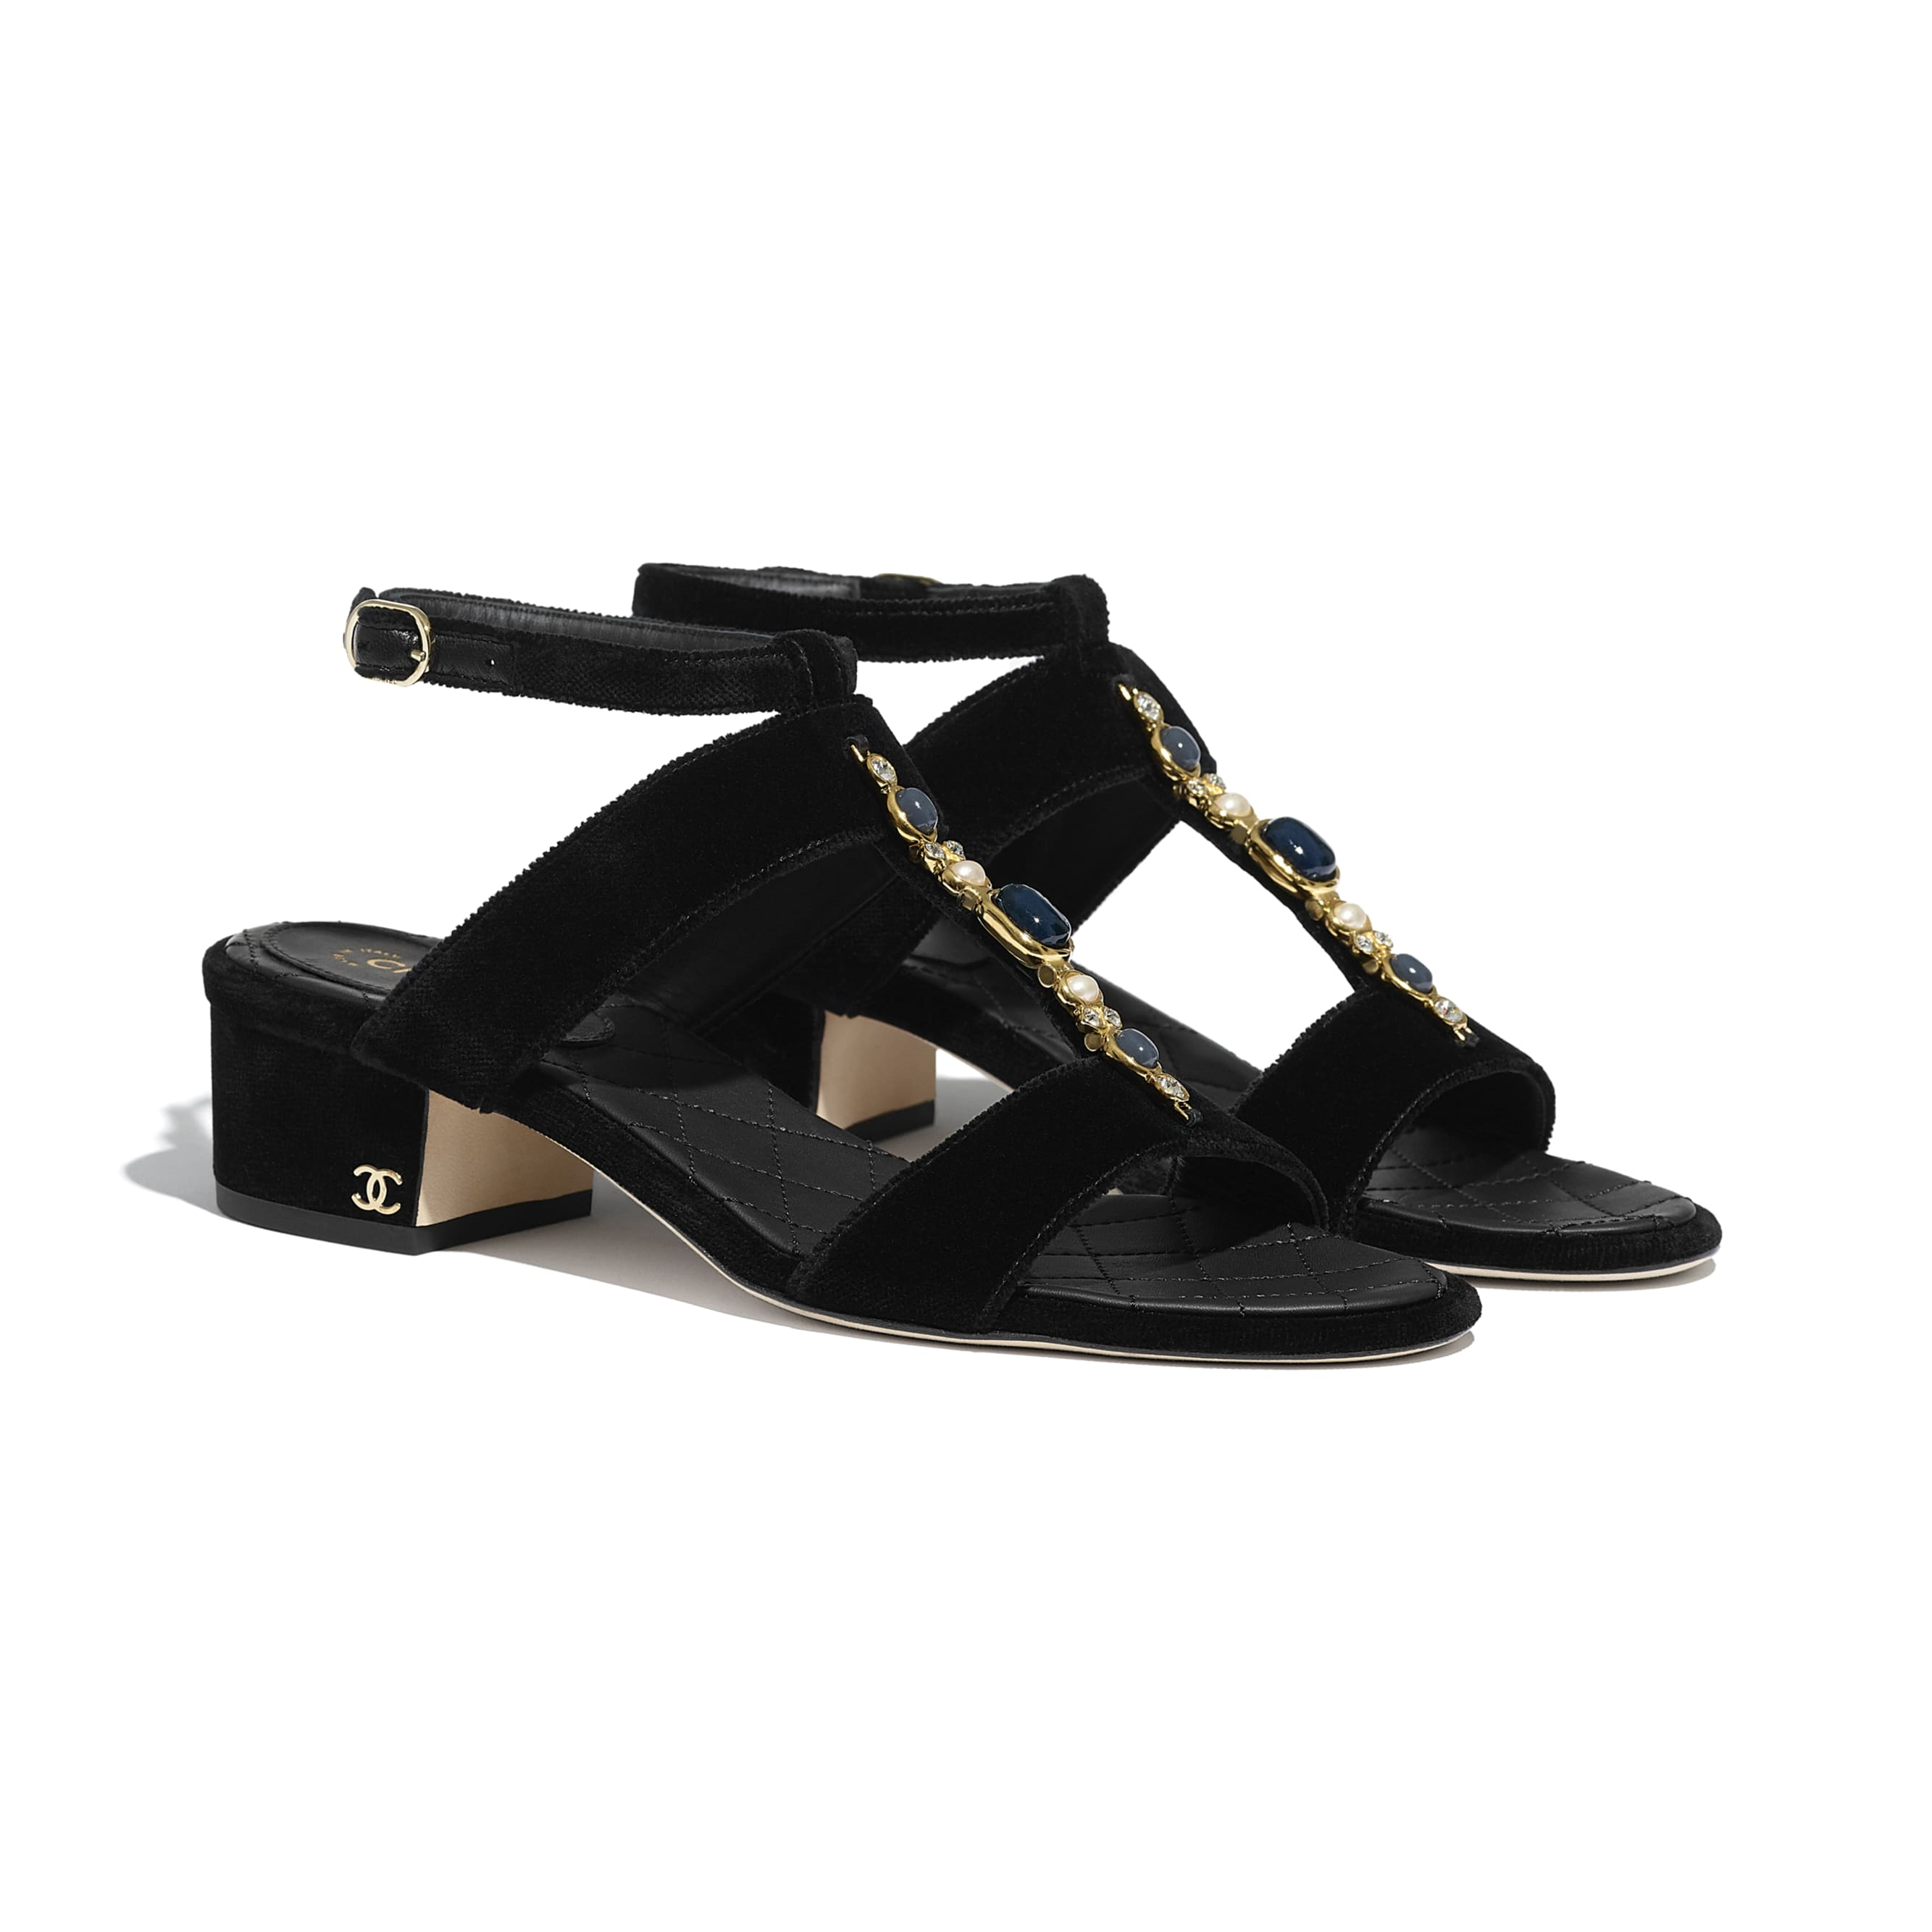 Sandals - Black - Velvet - CHANEL - Alternative view - see standard sized version